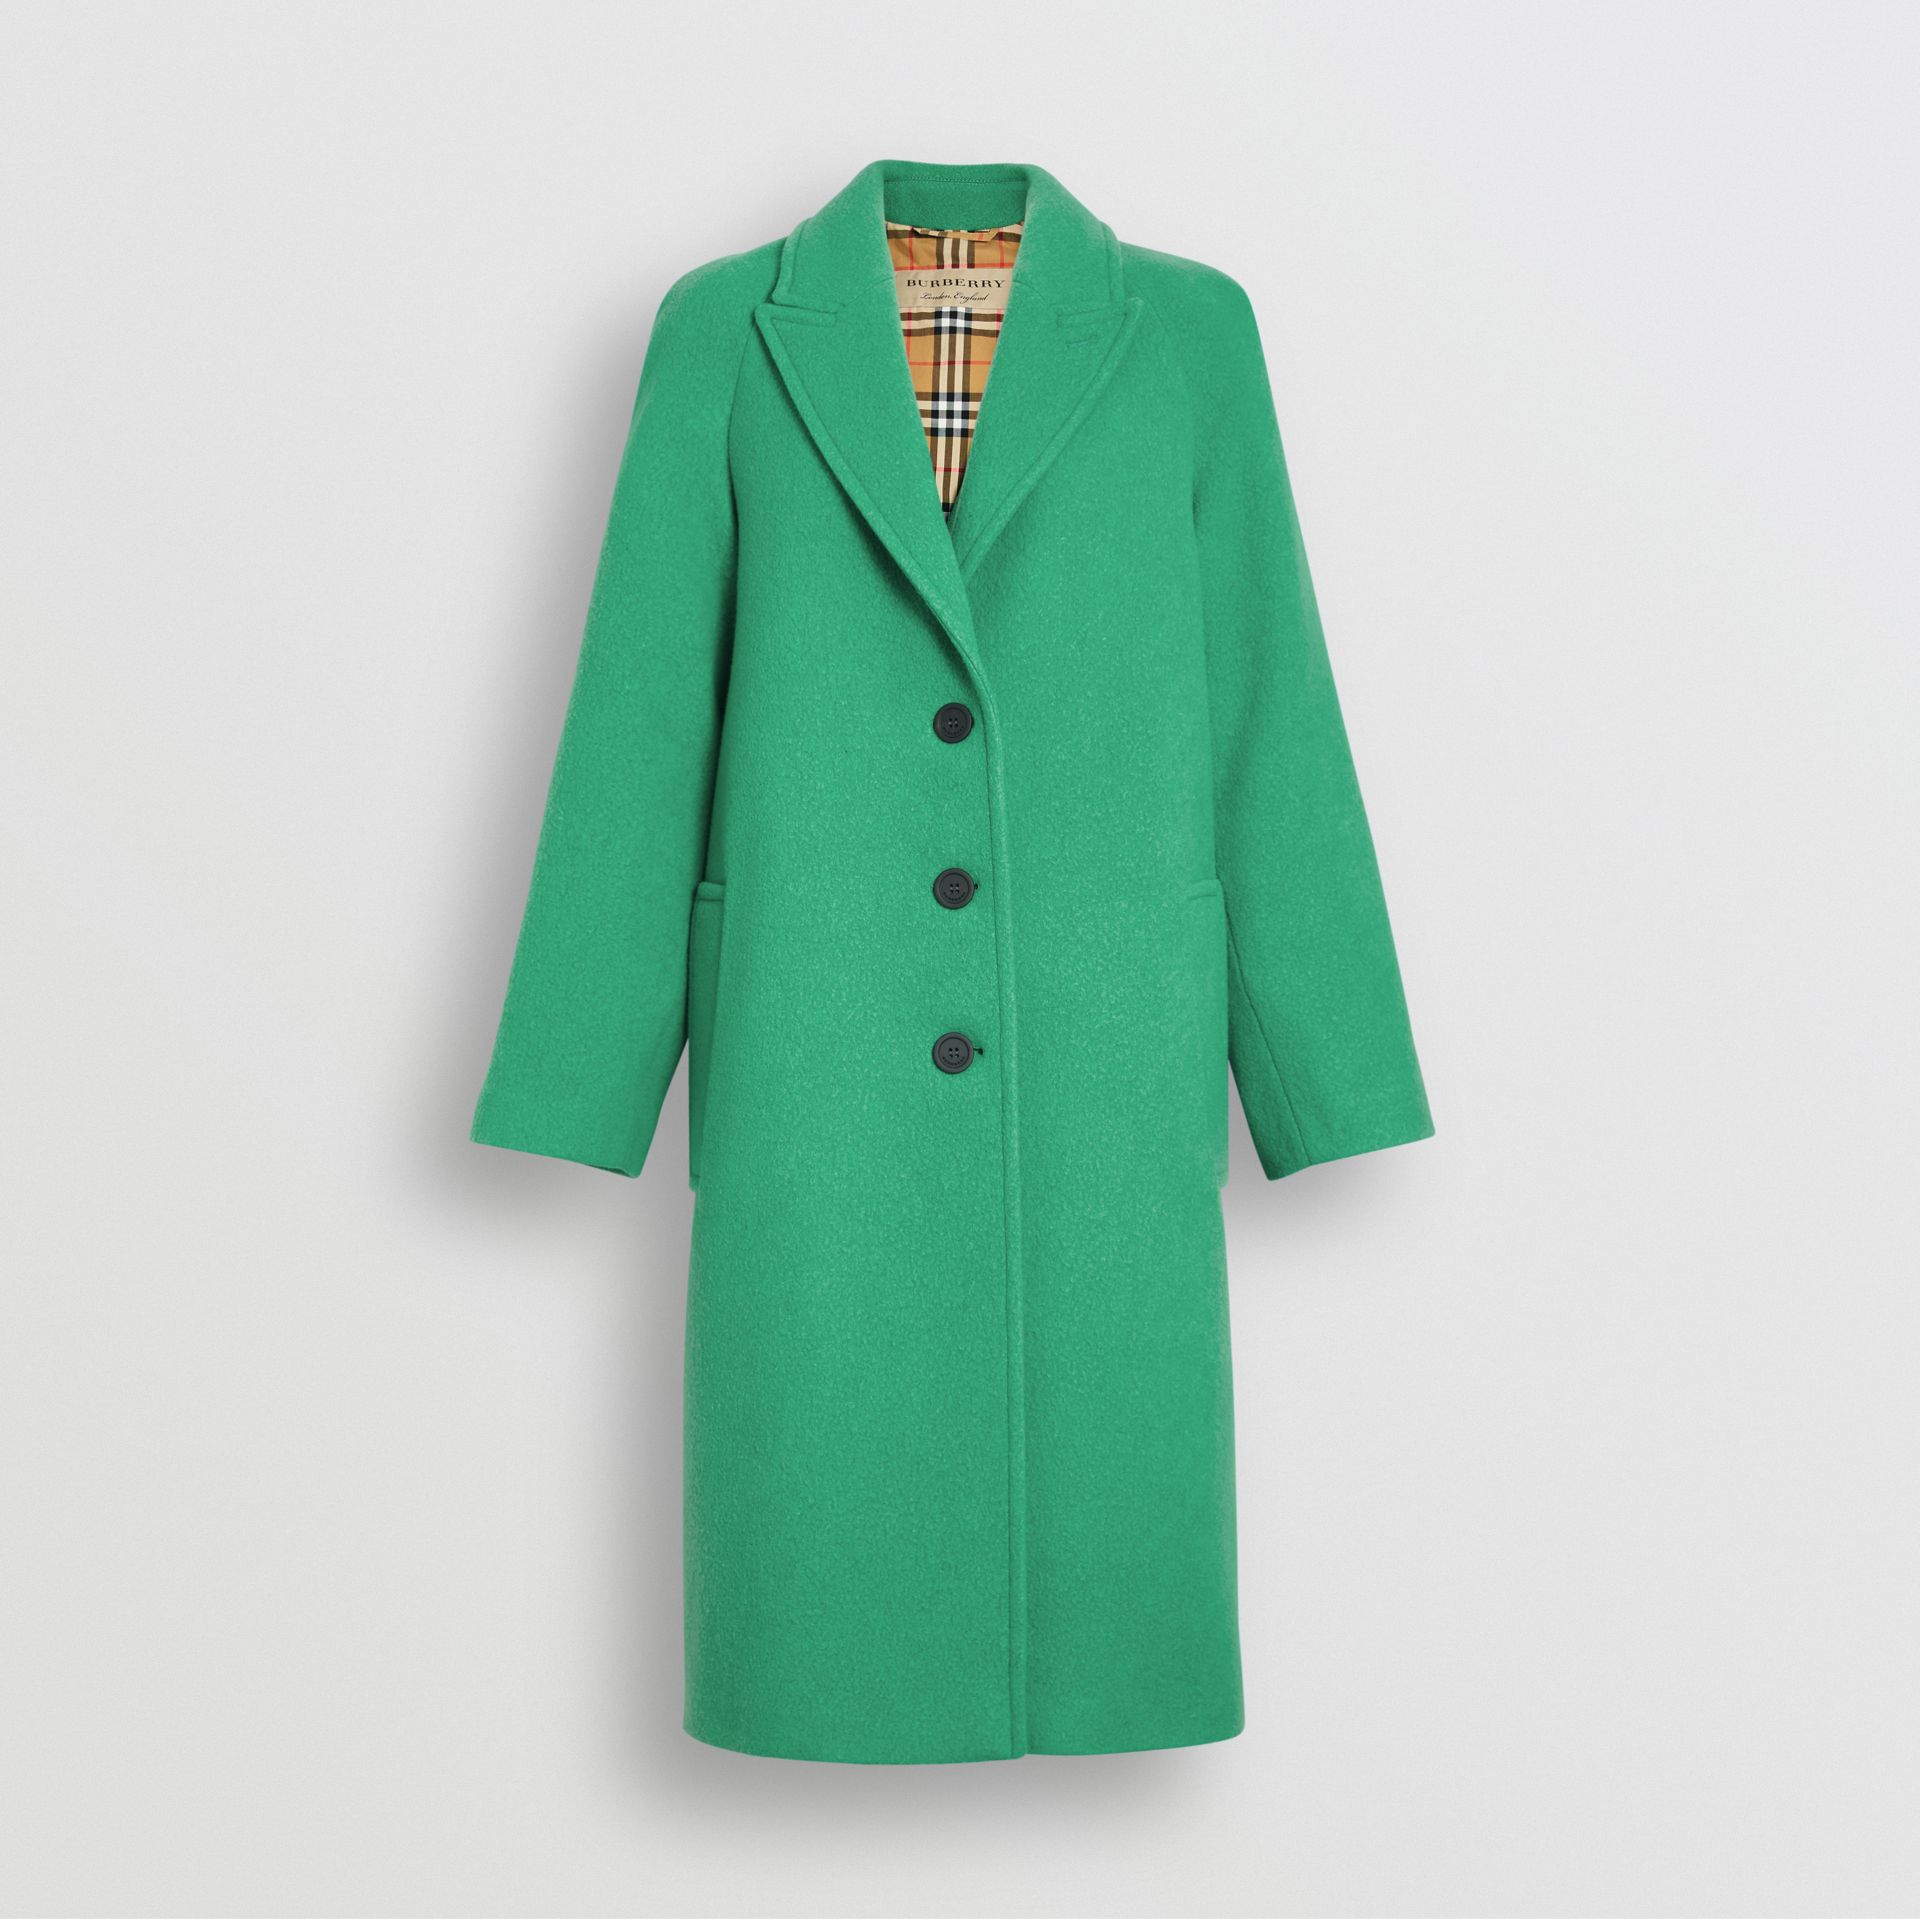 Wool Blend Tailored Coat in Bright Green - Women | Burberry United States - gallery image 3